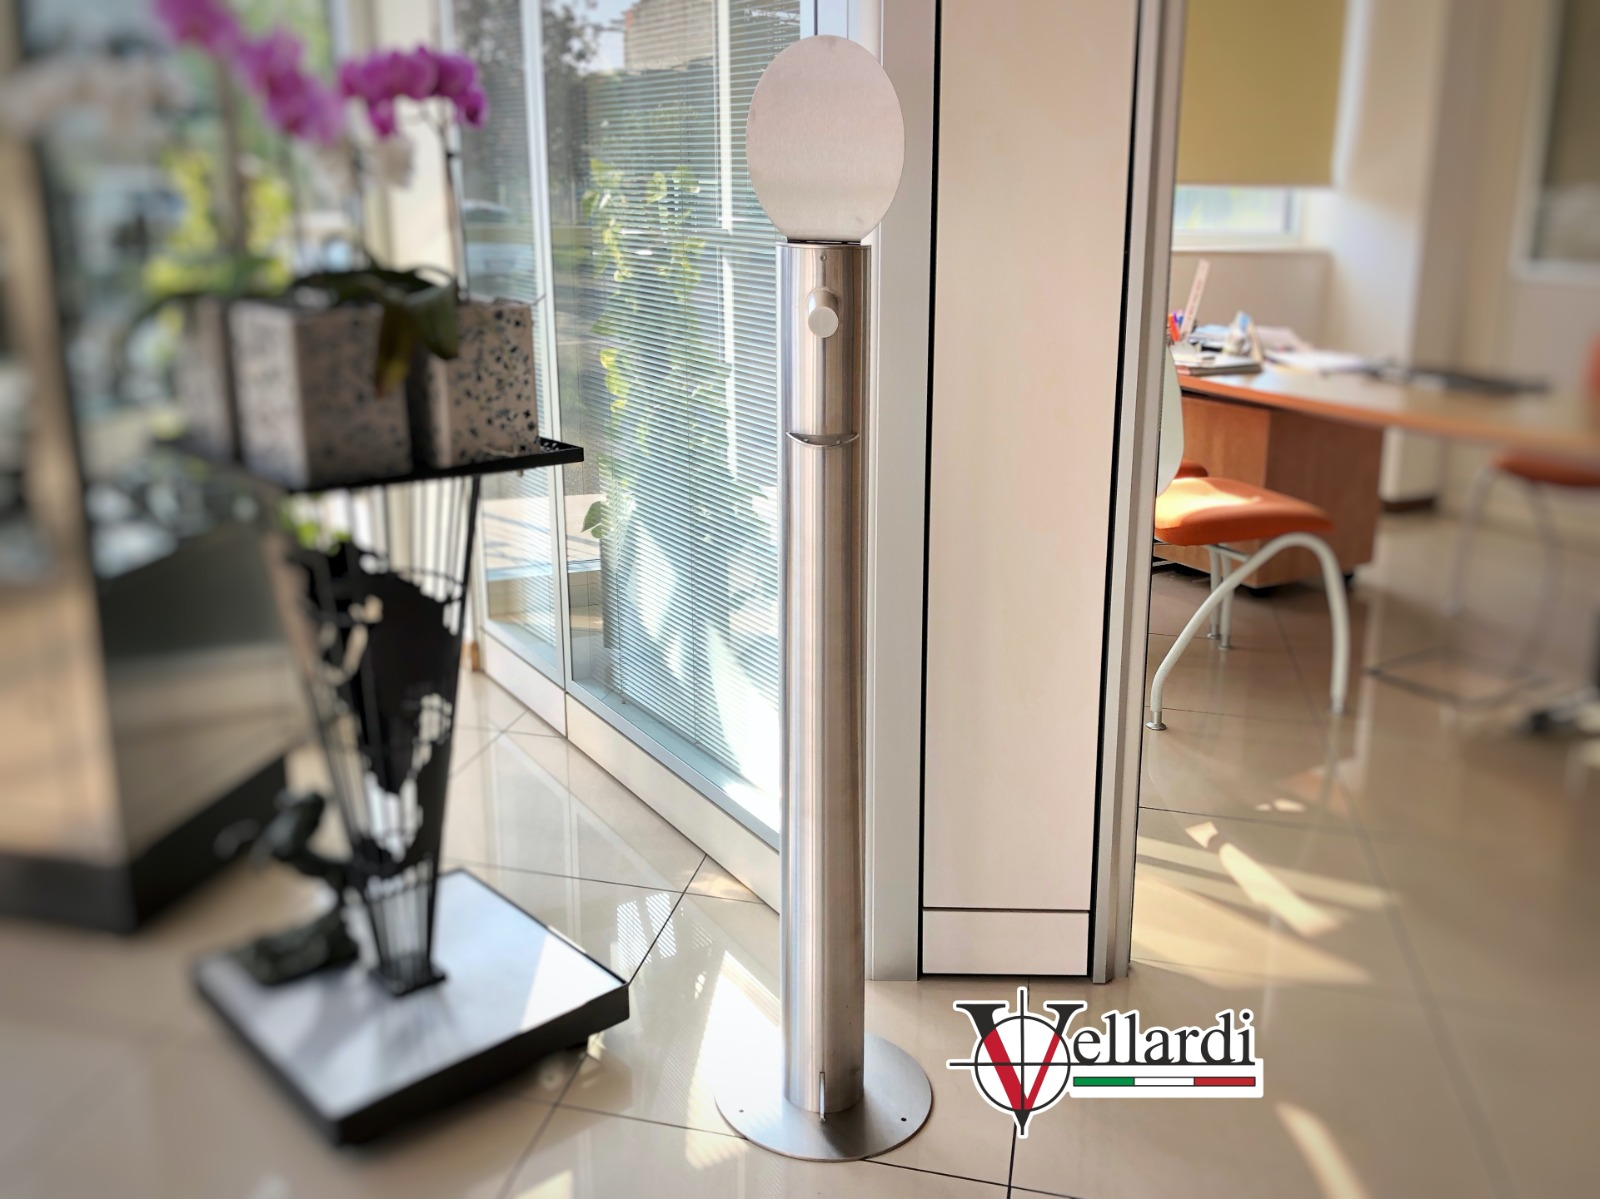 Colonna dispenser Gel Vellardi